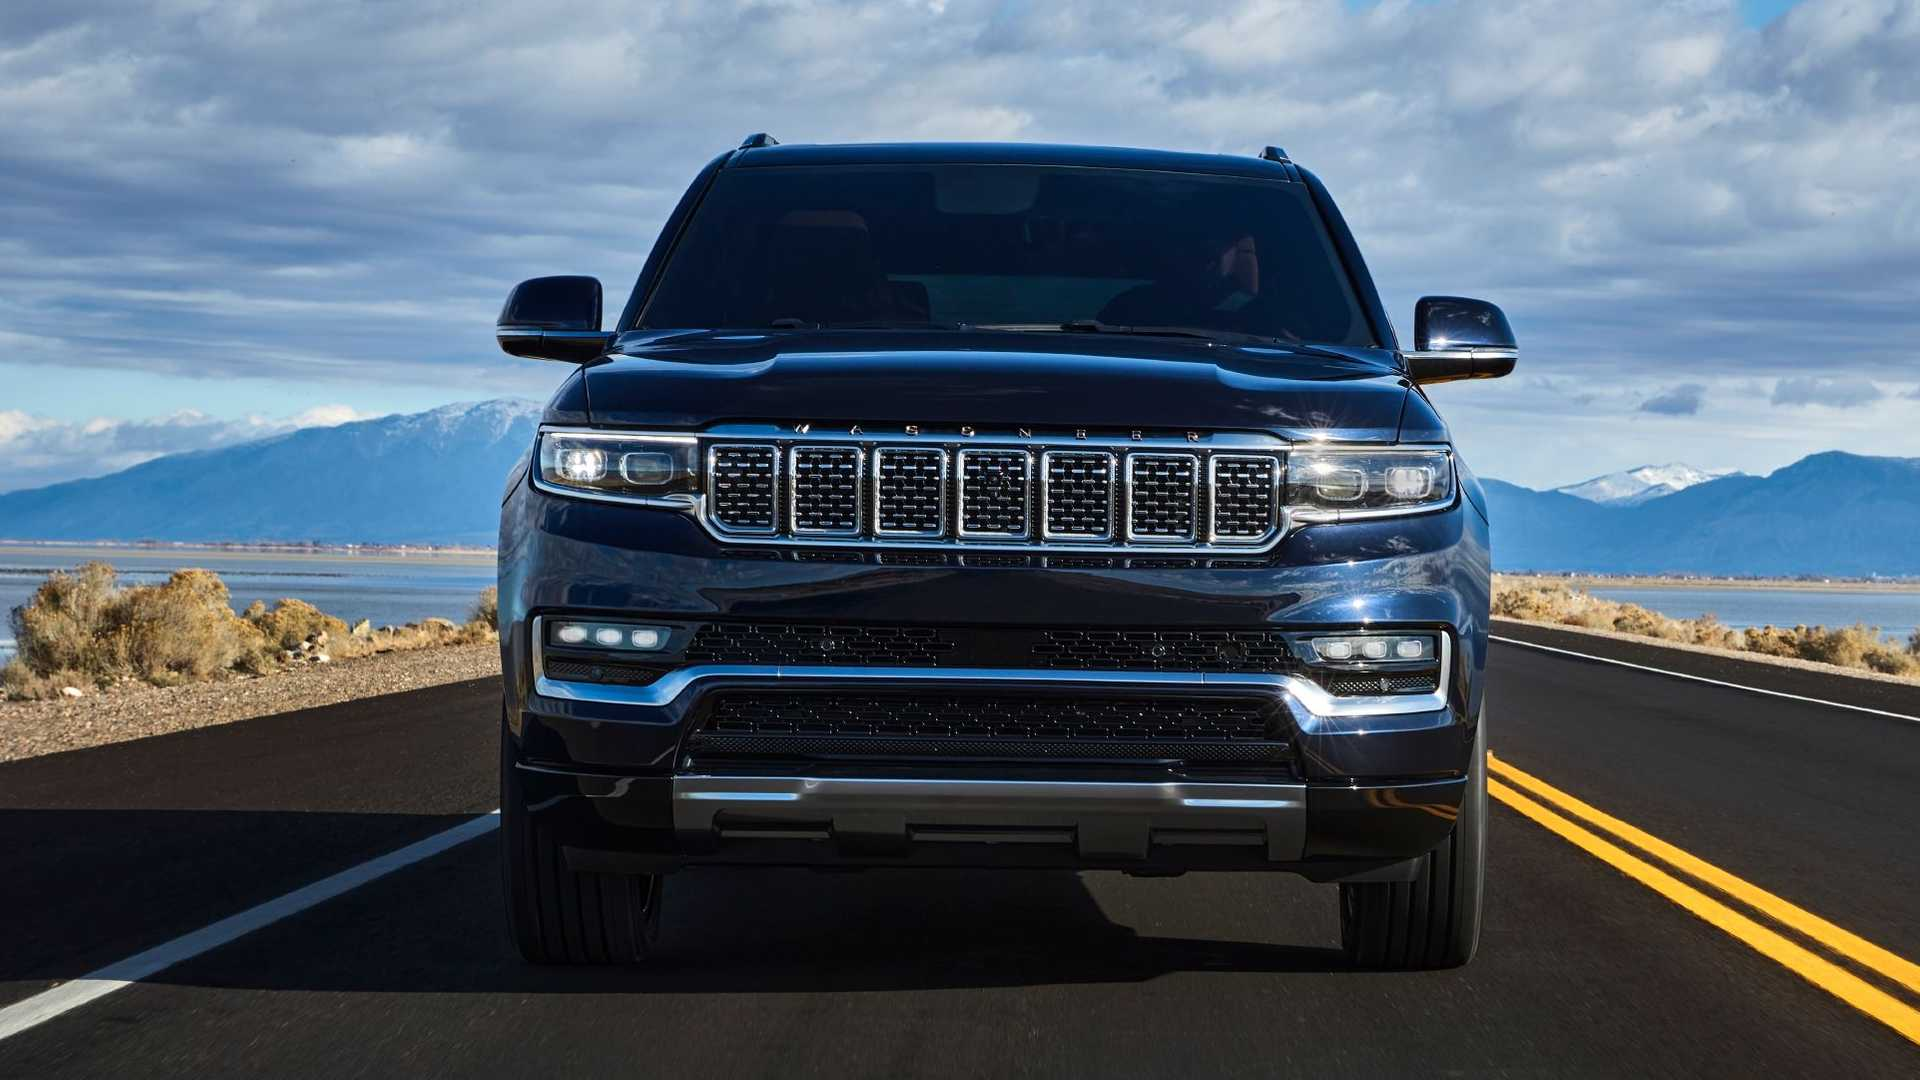 2022-jeep-grand-wagoneer-exterior-front-view-1